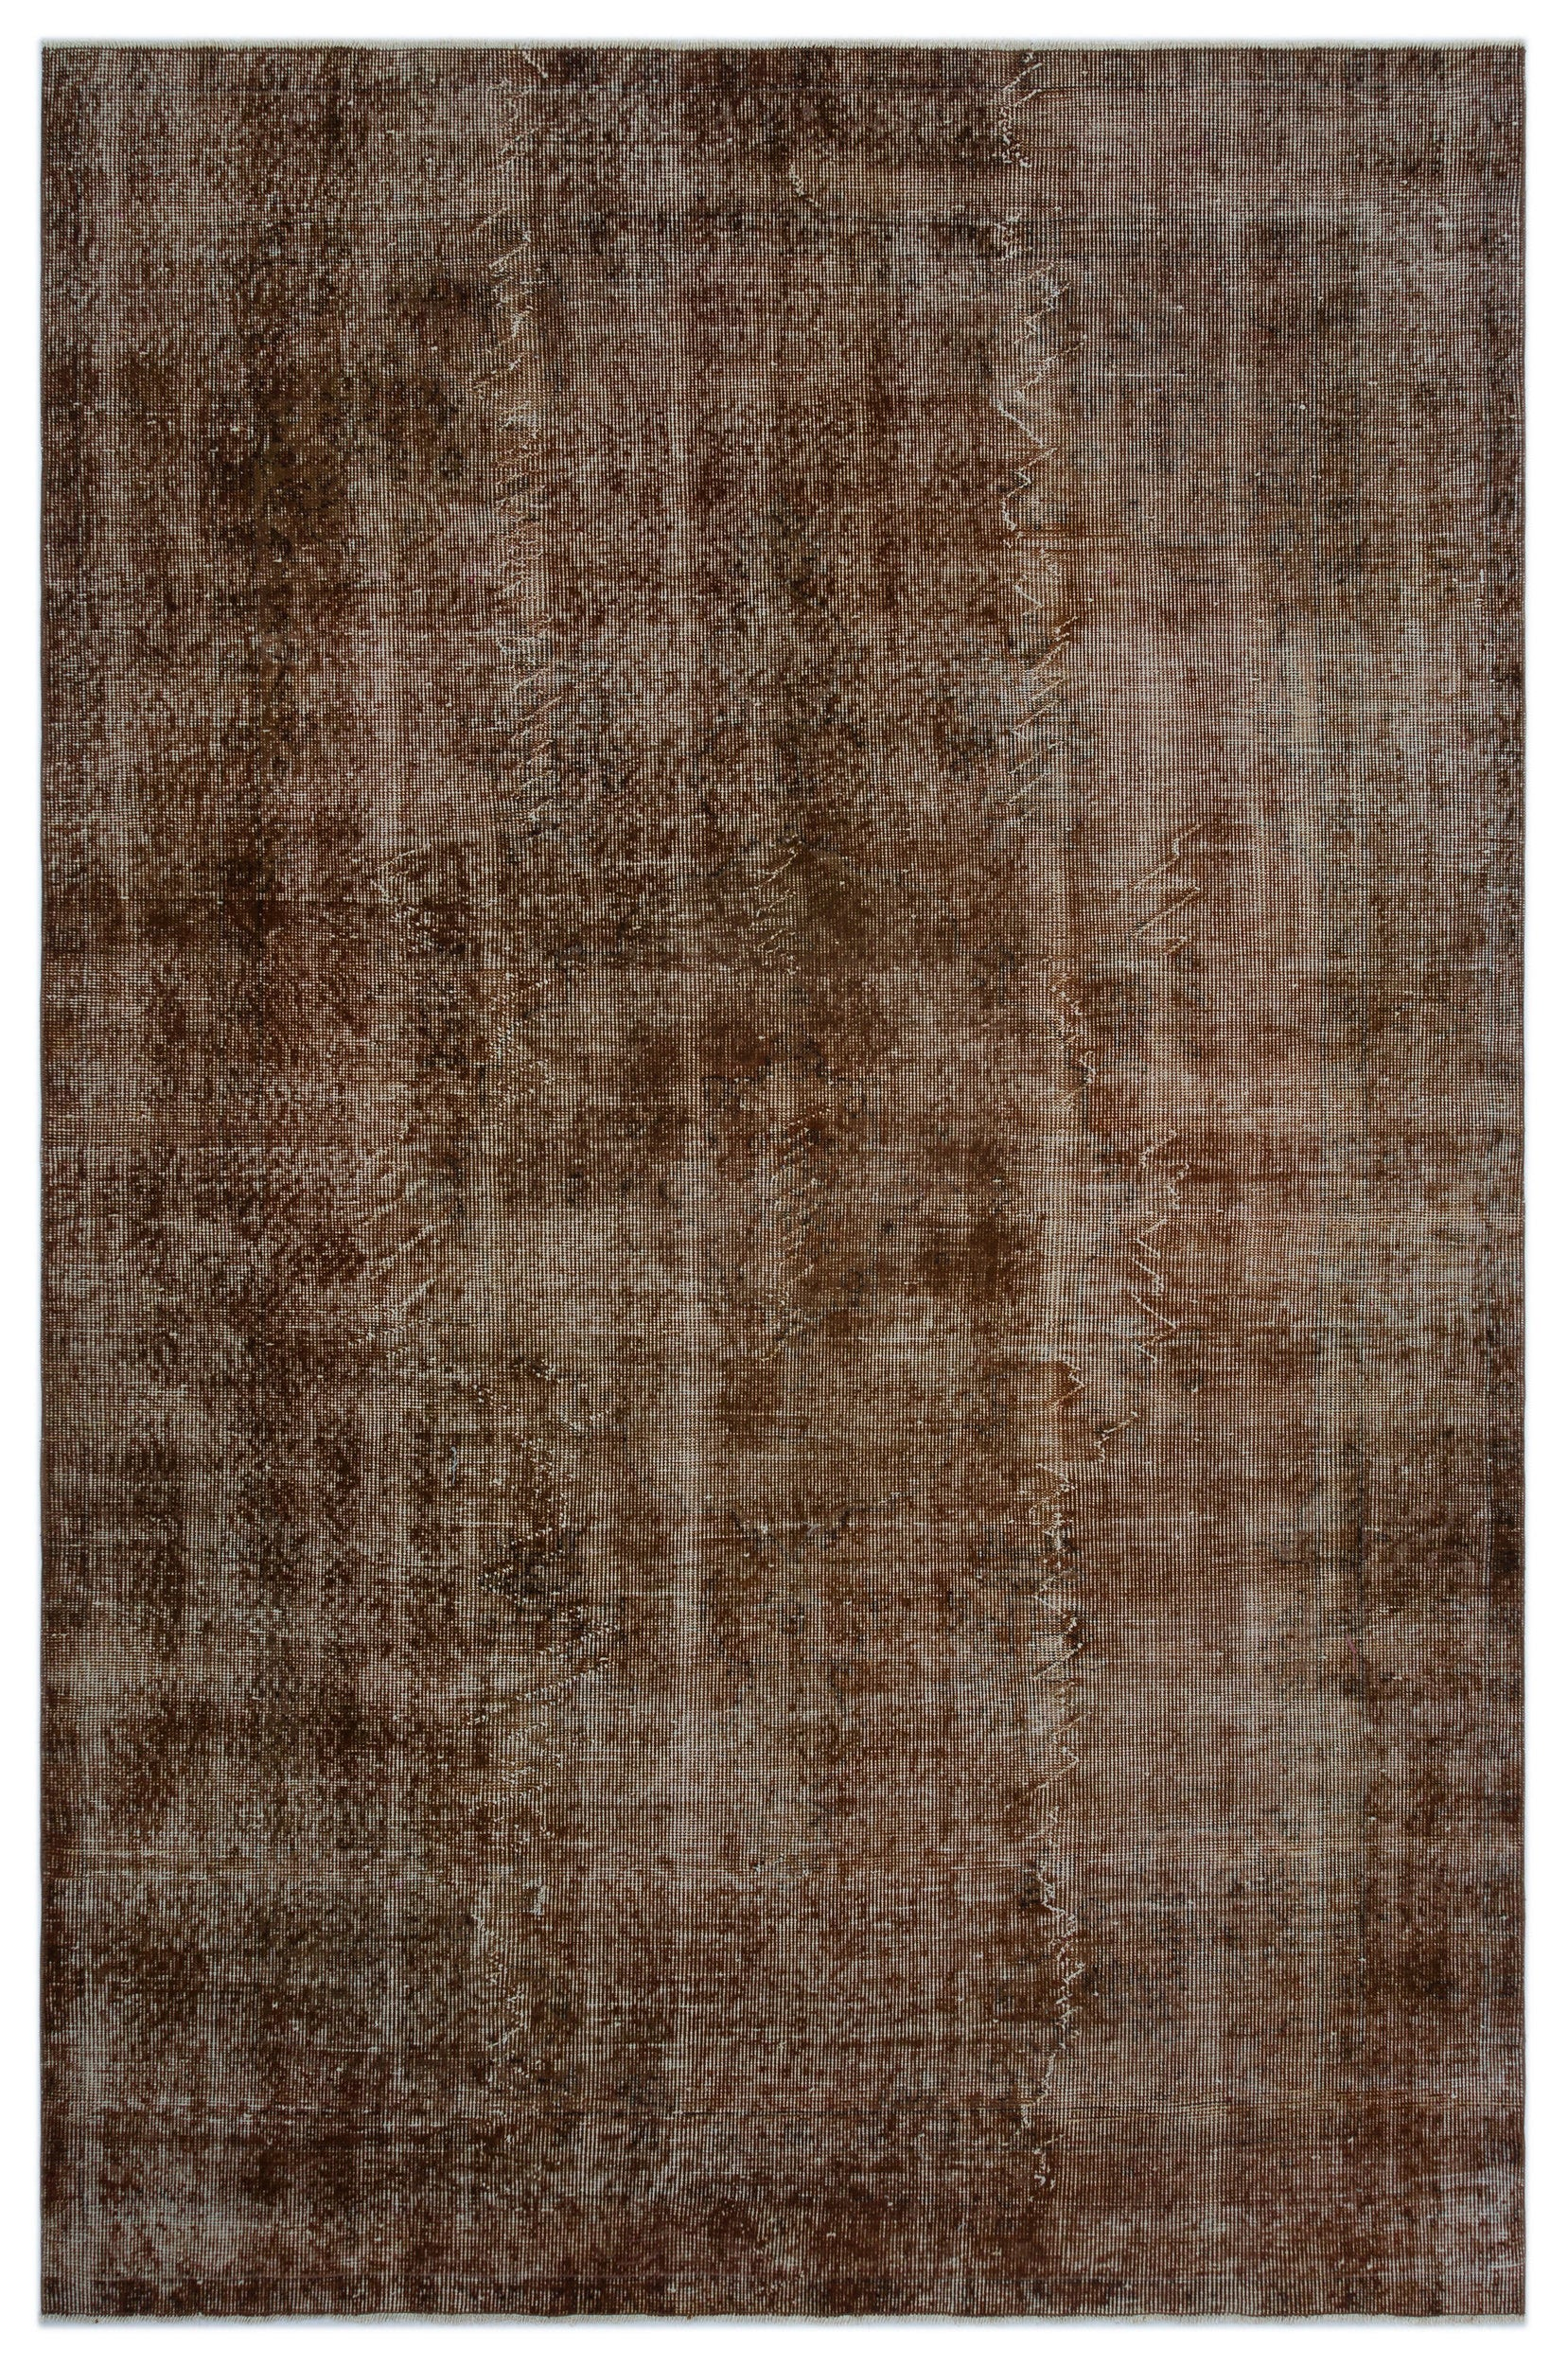 Brown Over Dyed Vintage Rug 6 2 X 9 4 Ft 188 X 284 Cm Unique Rug Store